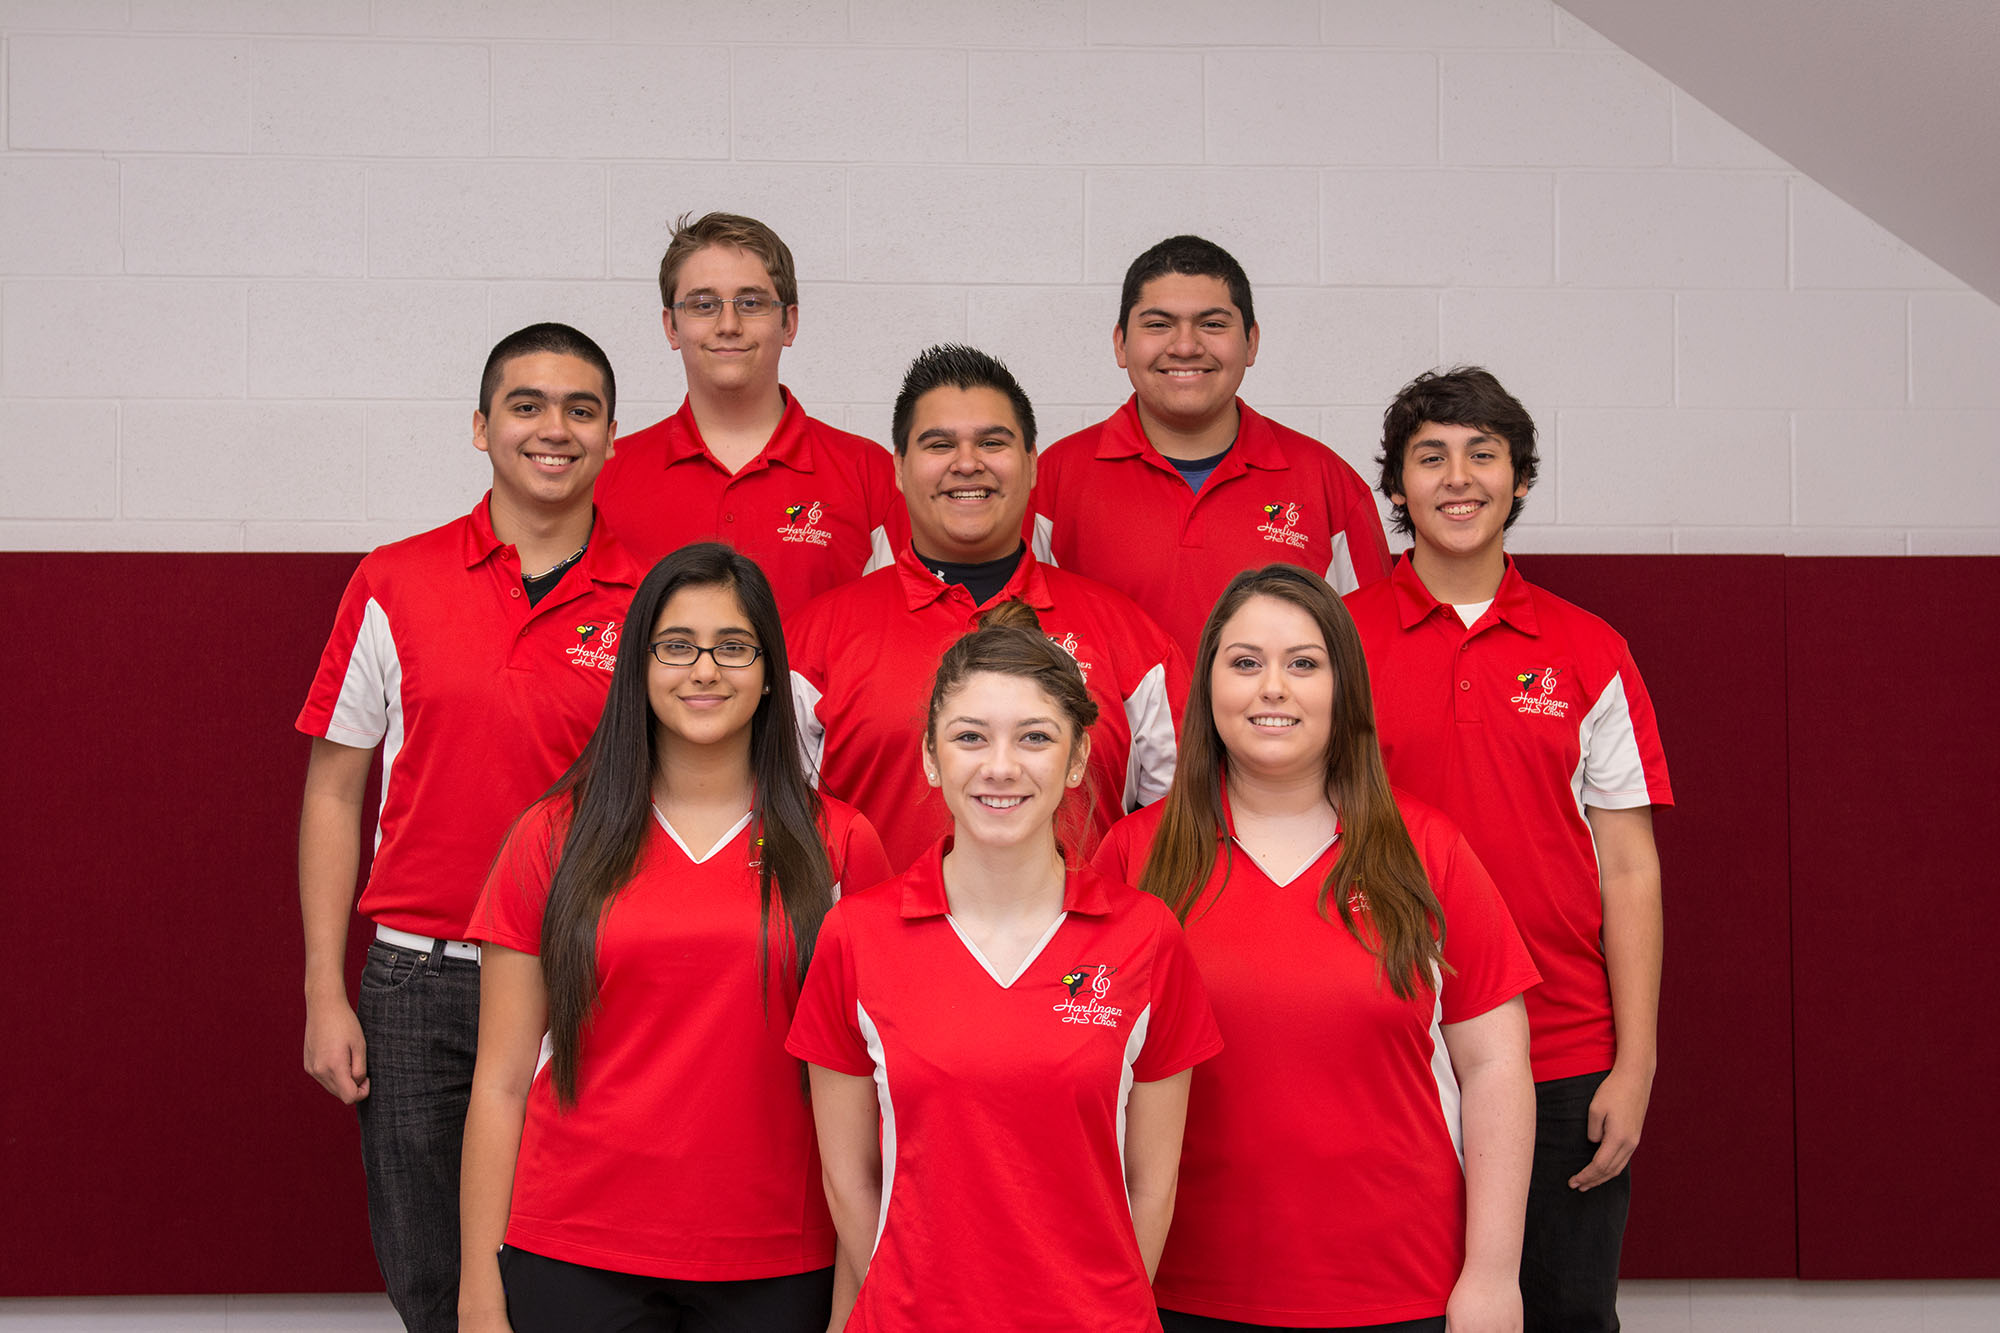 High school students selected for TMEA All State music ensembles